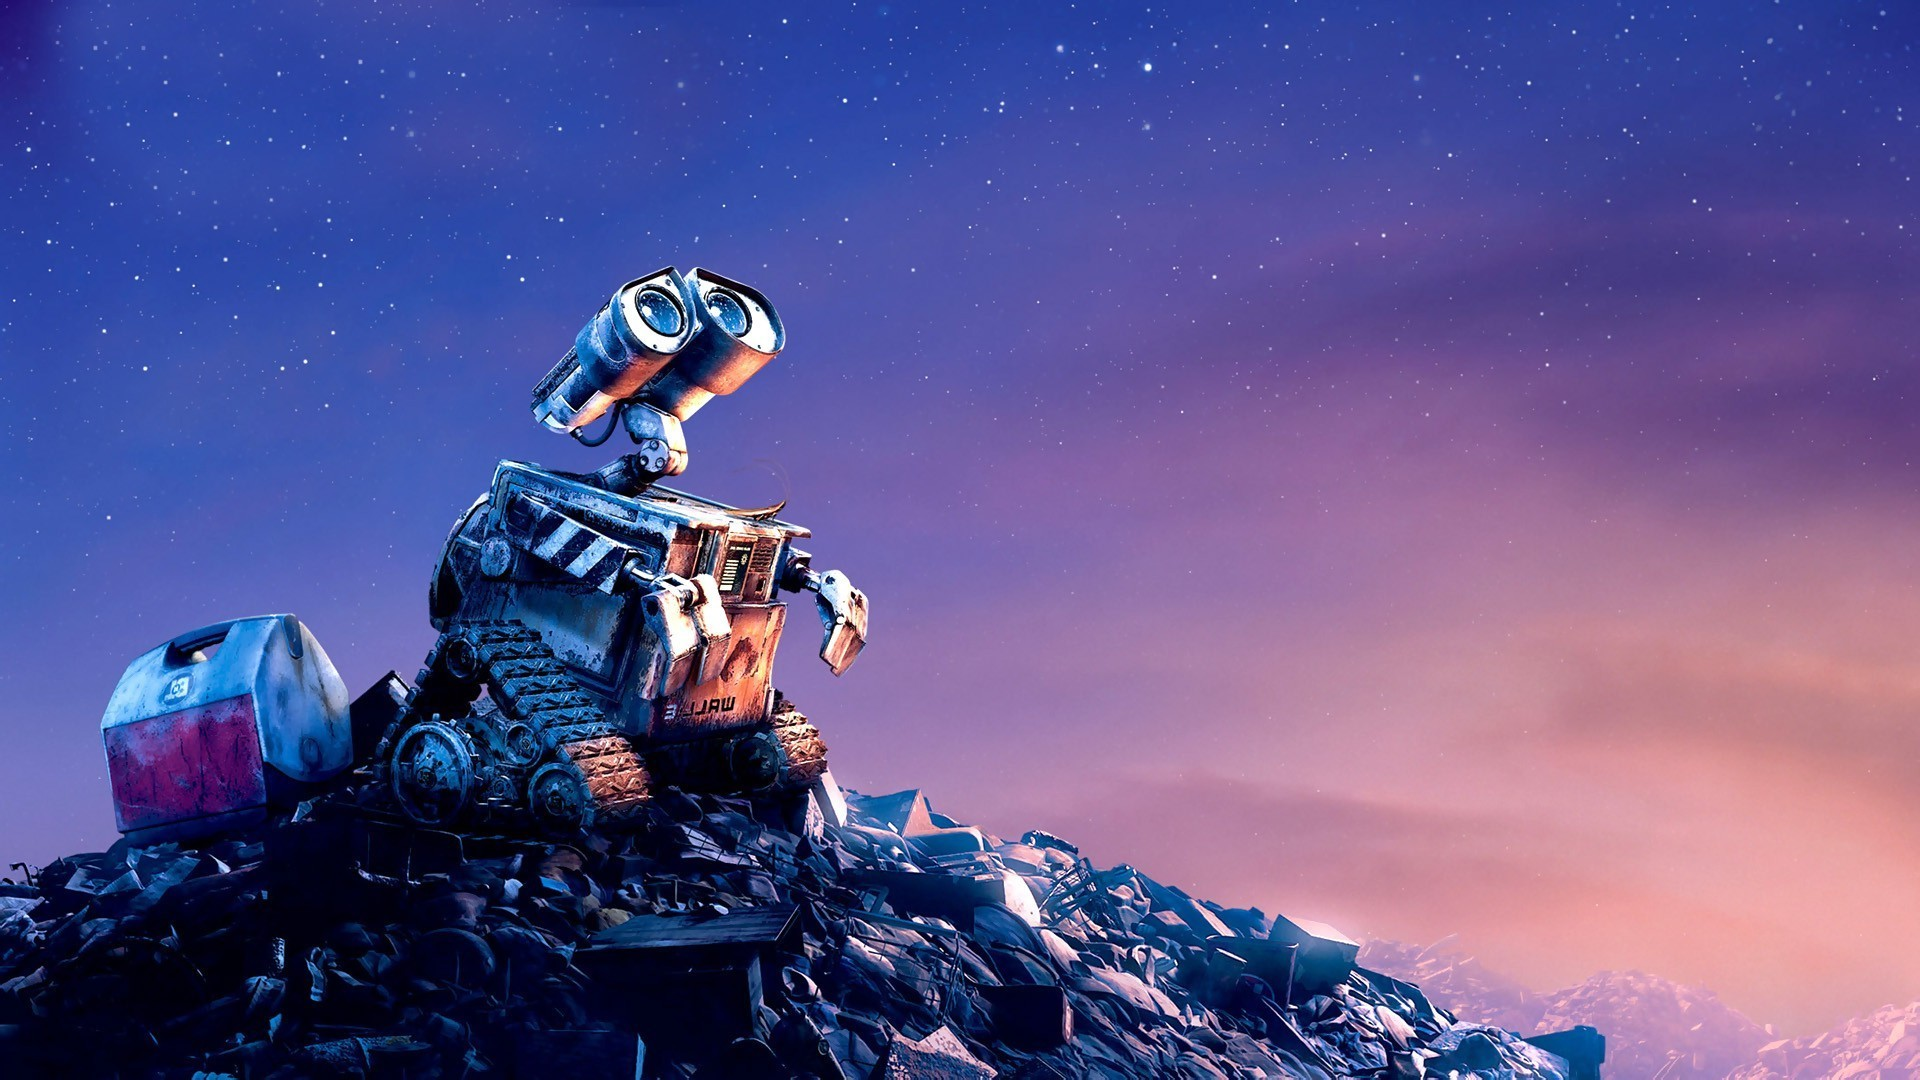 WALL·E, Pixar Animation Studios, Movies, Stars, Sky, Space, Robot Wallpapers  HD / Desktop and Mobile Backgrounds